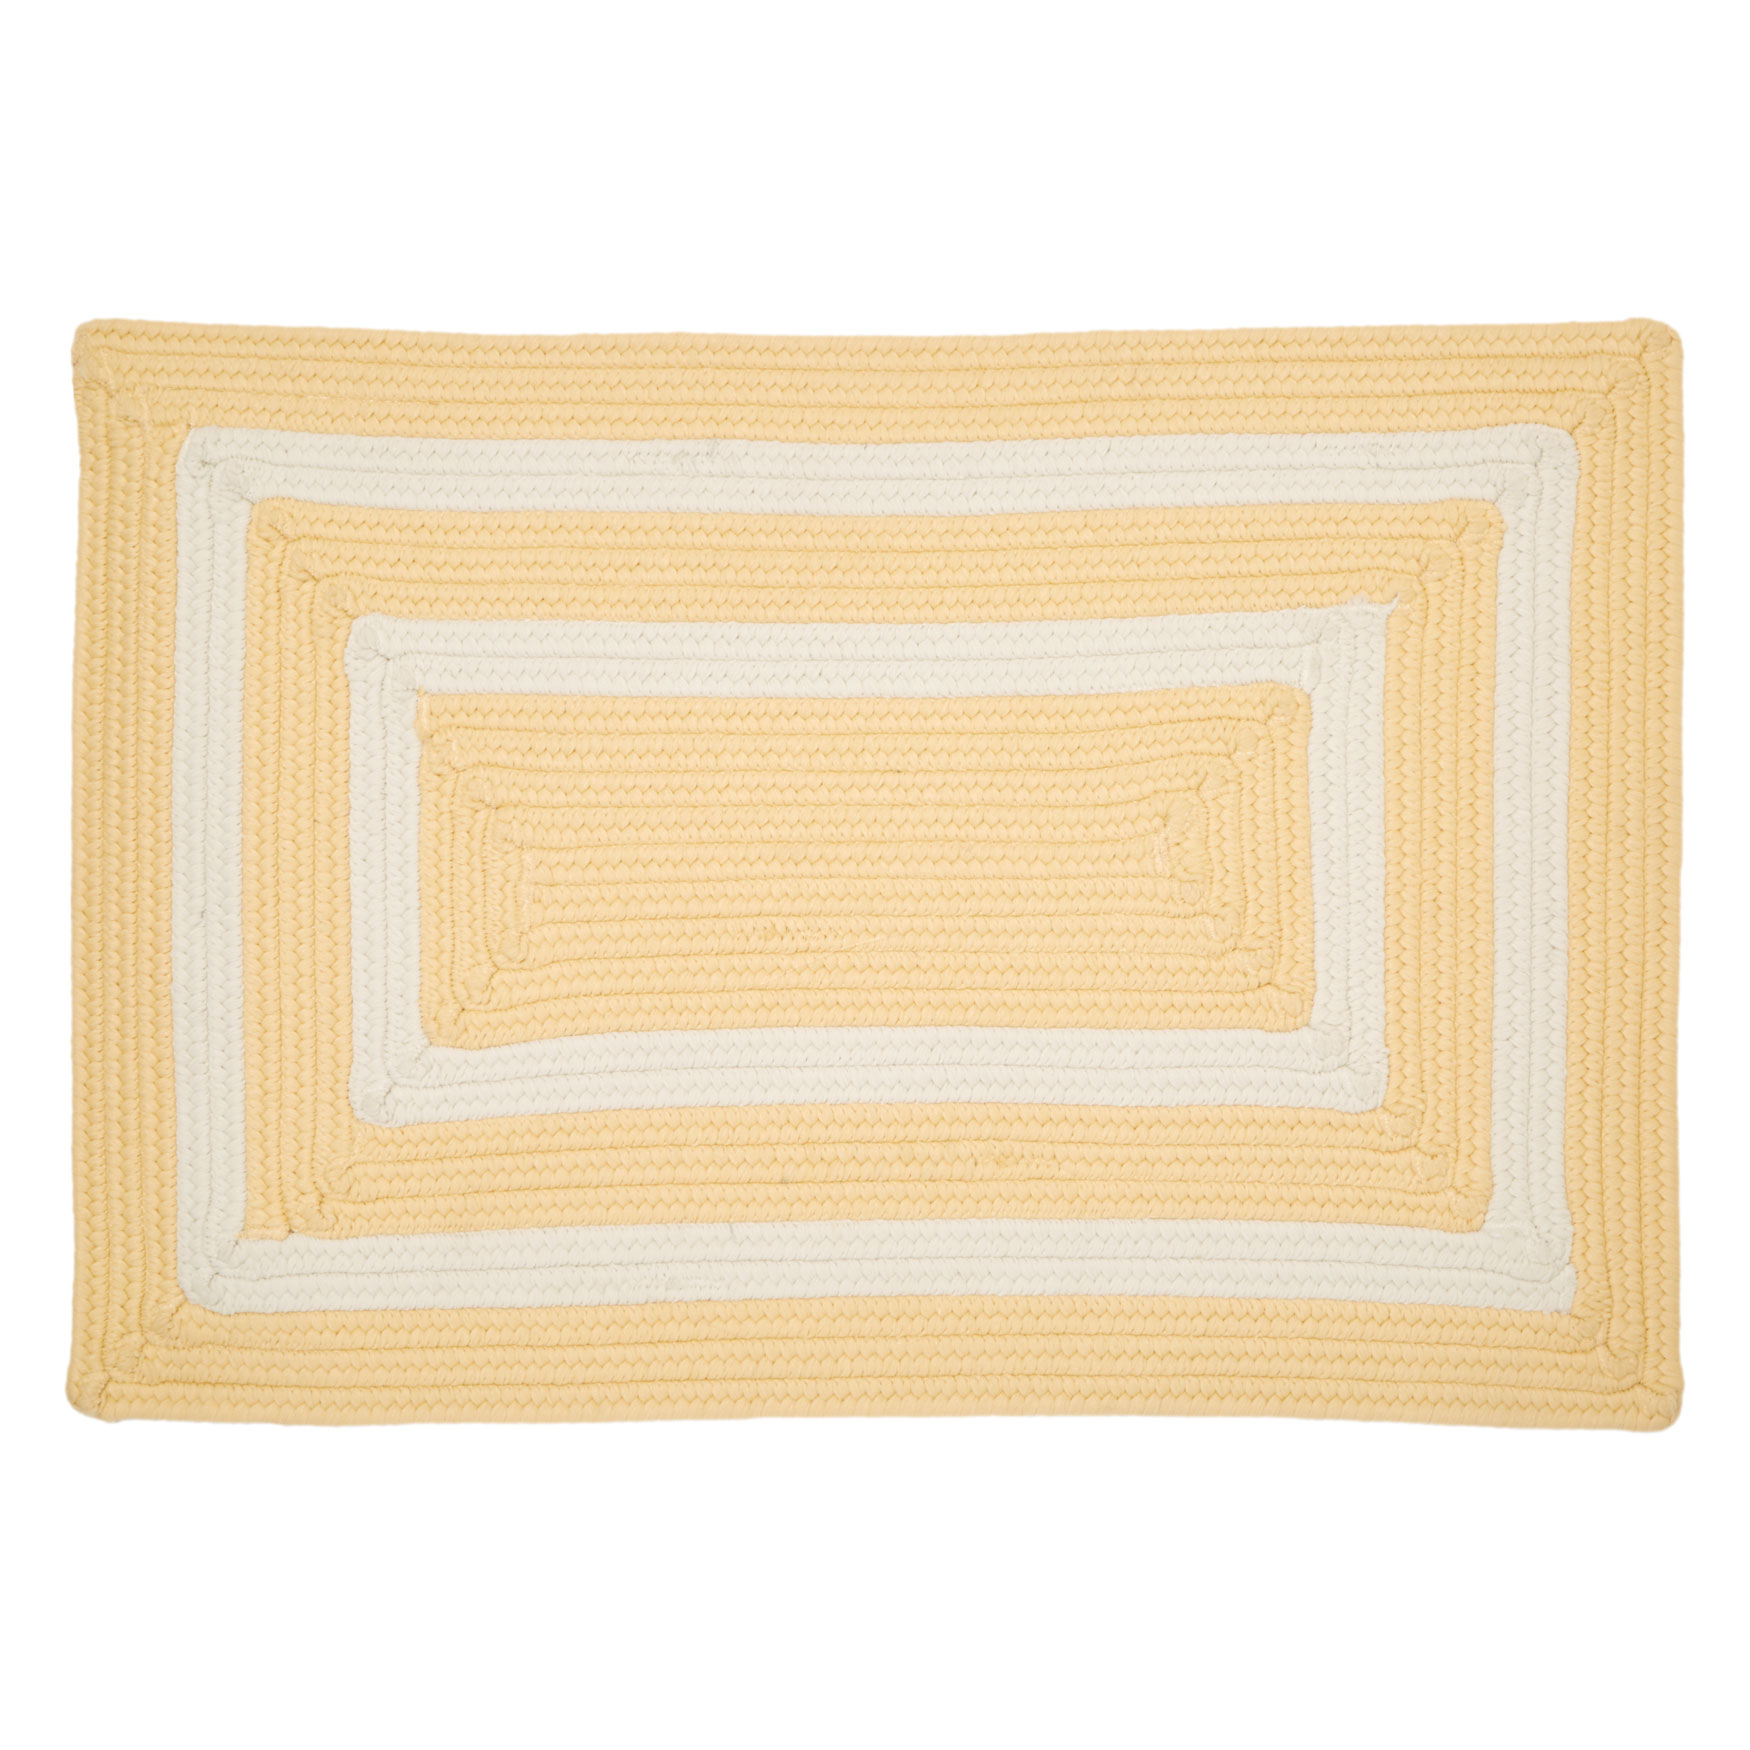 La Playa Reversible 30'W x 48'L Double-Bordered Mat , YELLOW BORDER